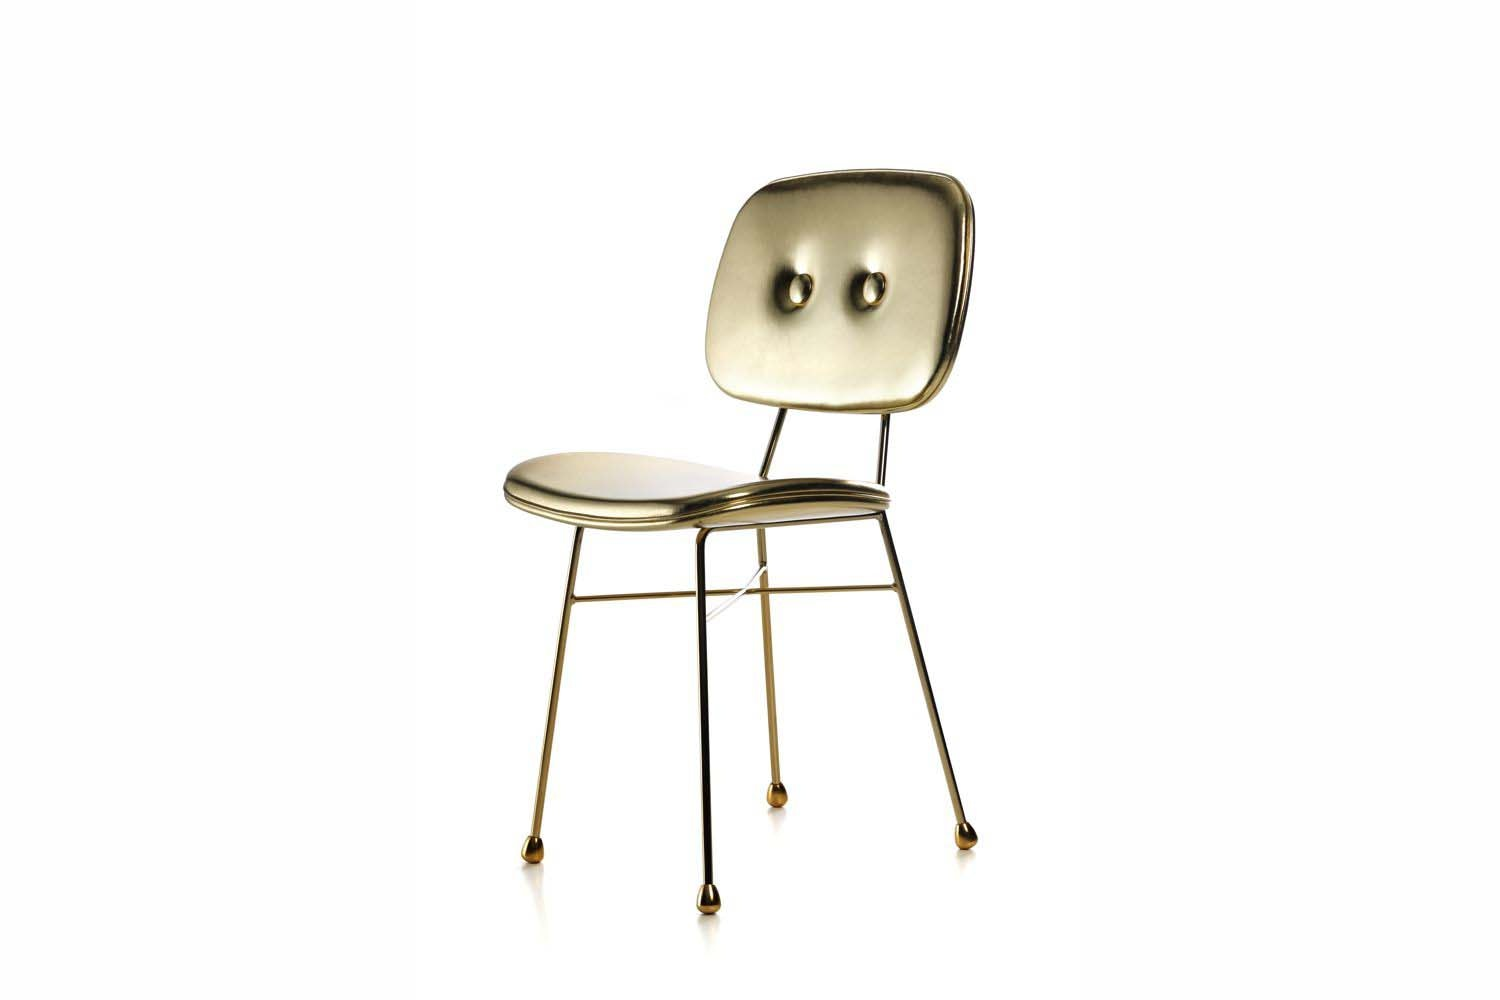 Golden Chair by Nika Zupanc for Moooi